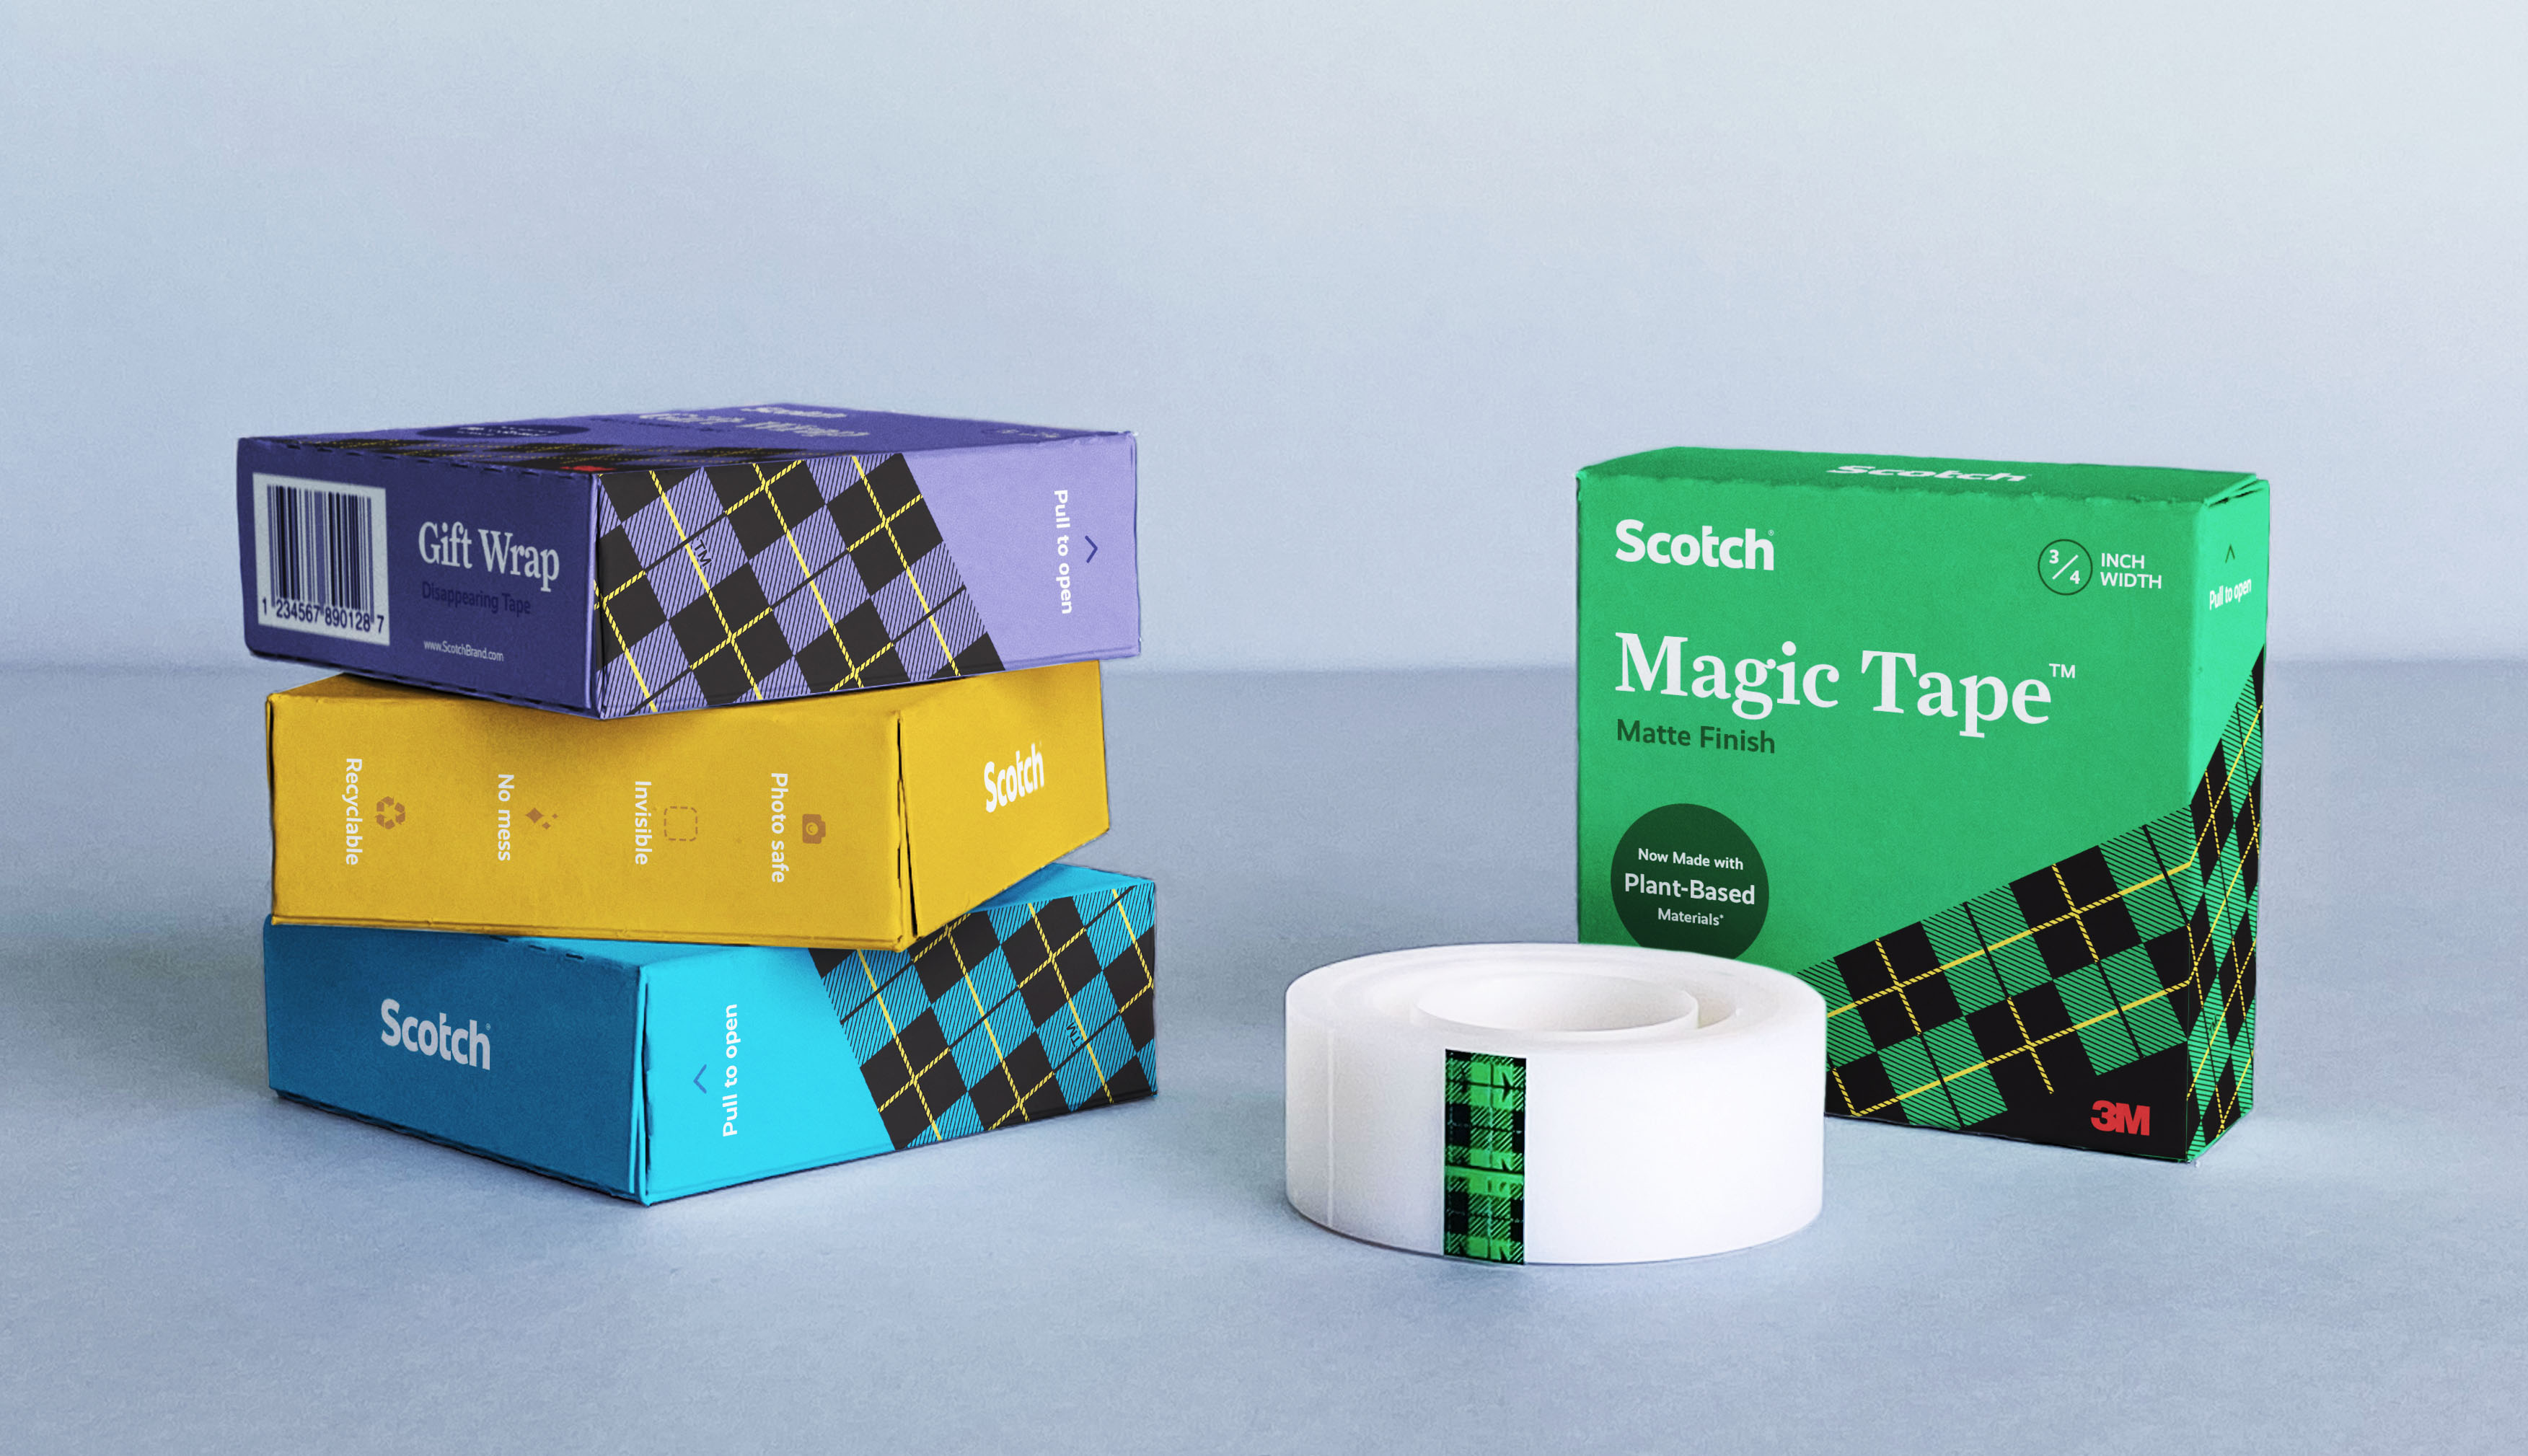 Redesigned tape refill boxes for a Scotch brand refresh